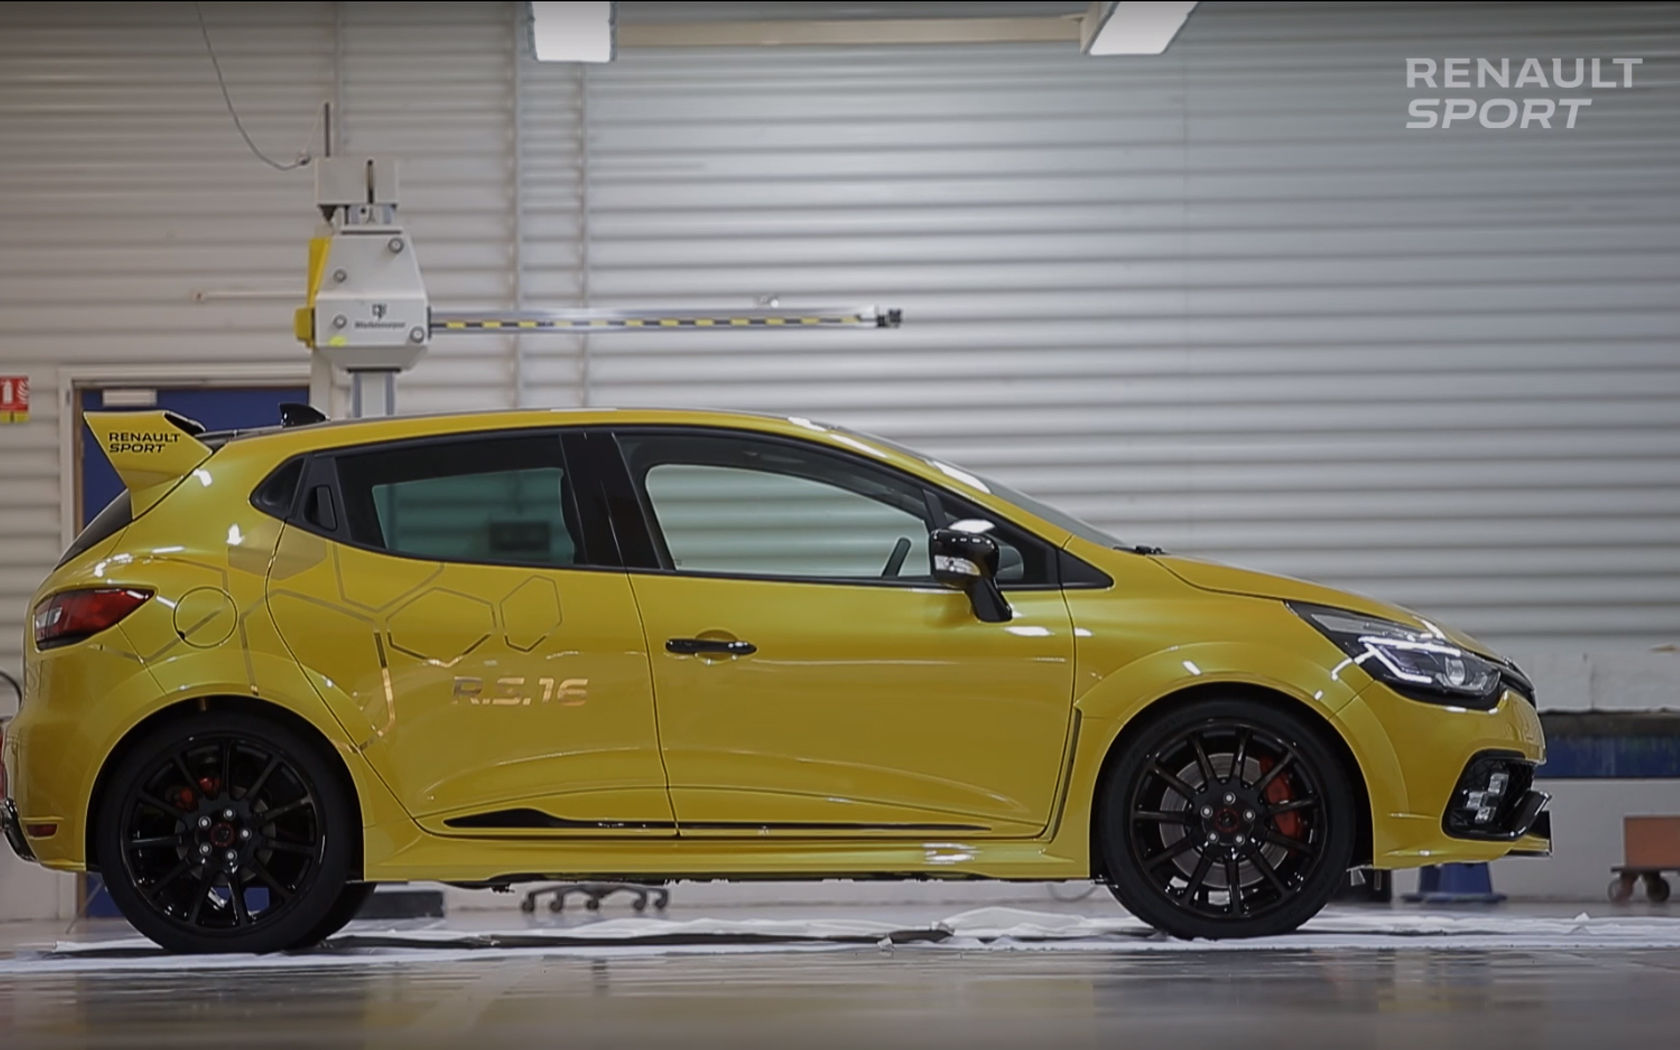 Renault Clio R.S.16 - garage - side-face / profil - zoom